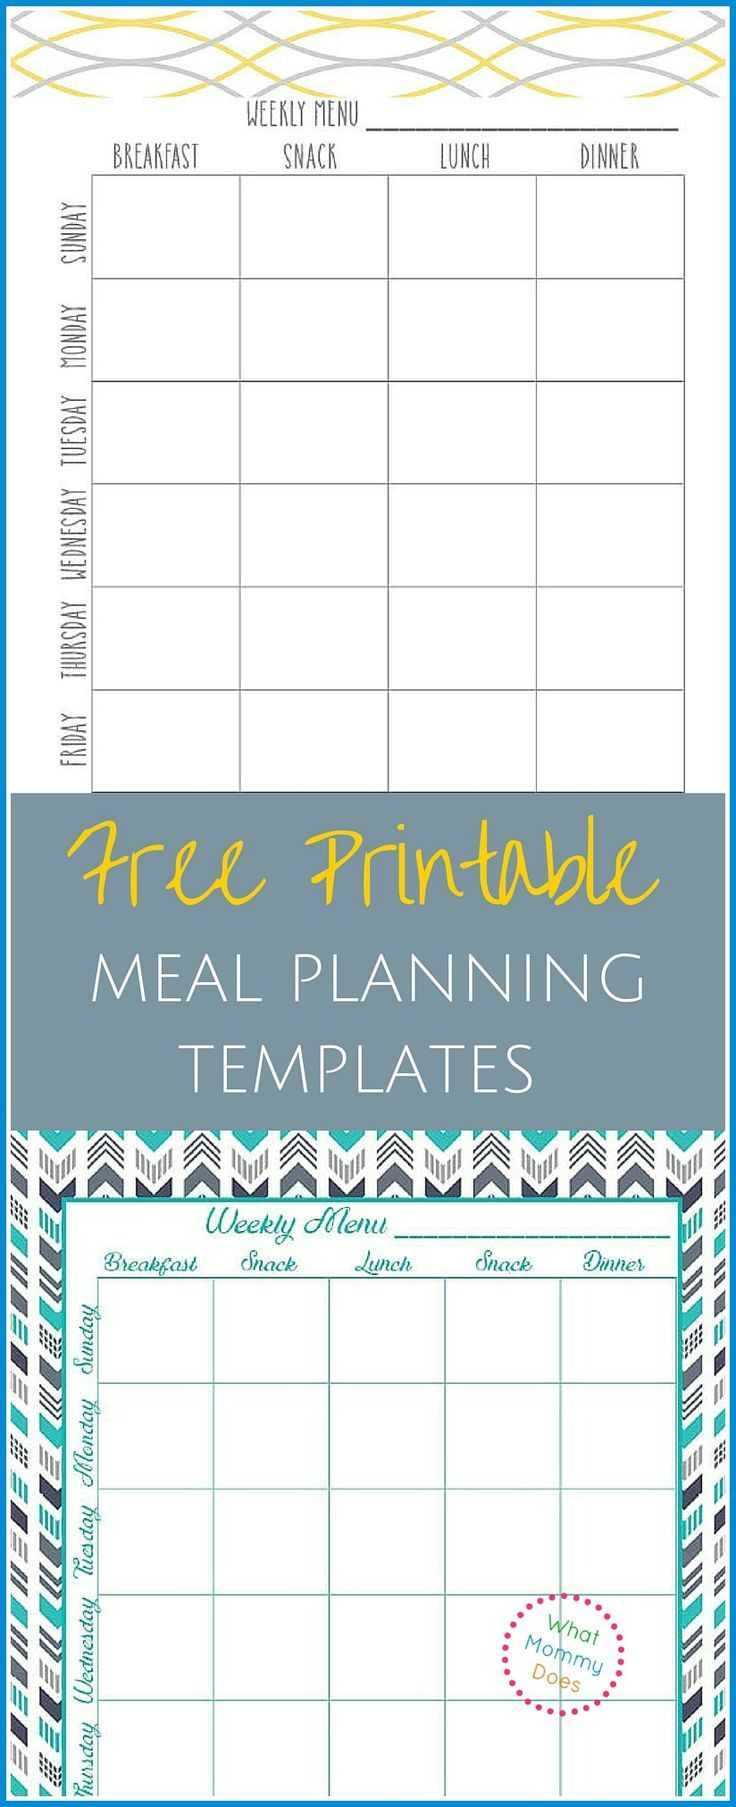 Best 25+ Vacation meal planning ideas only on Pinterest ...